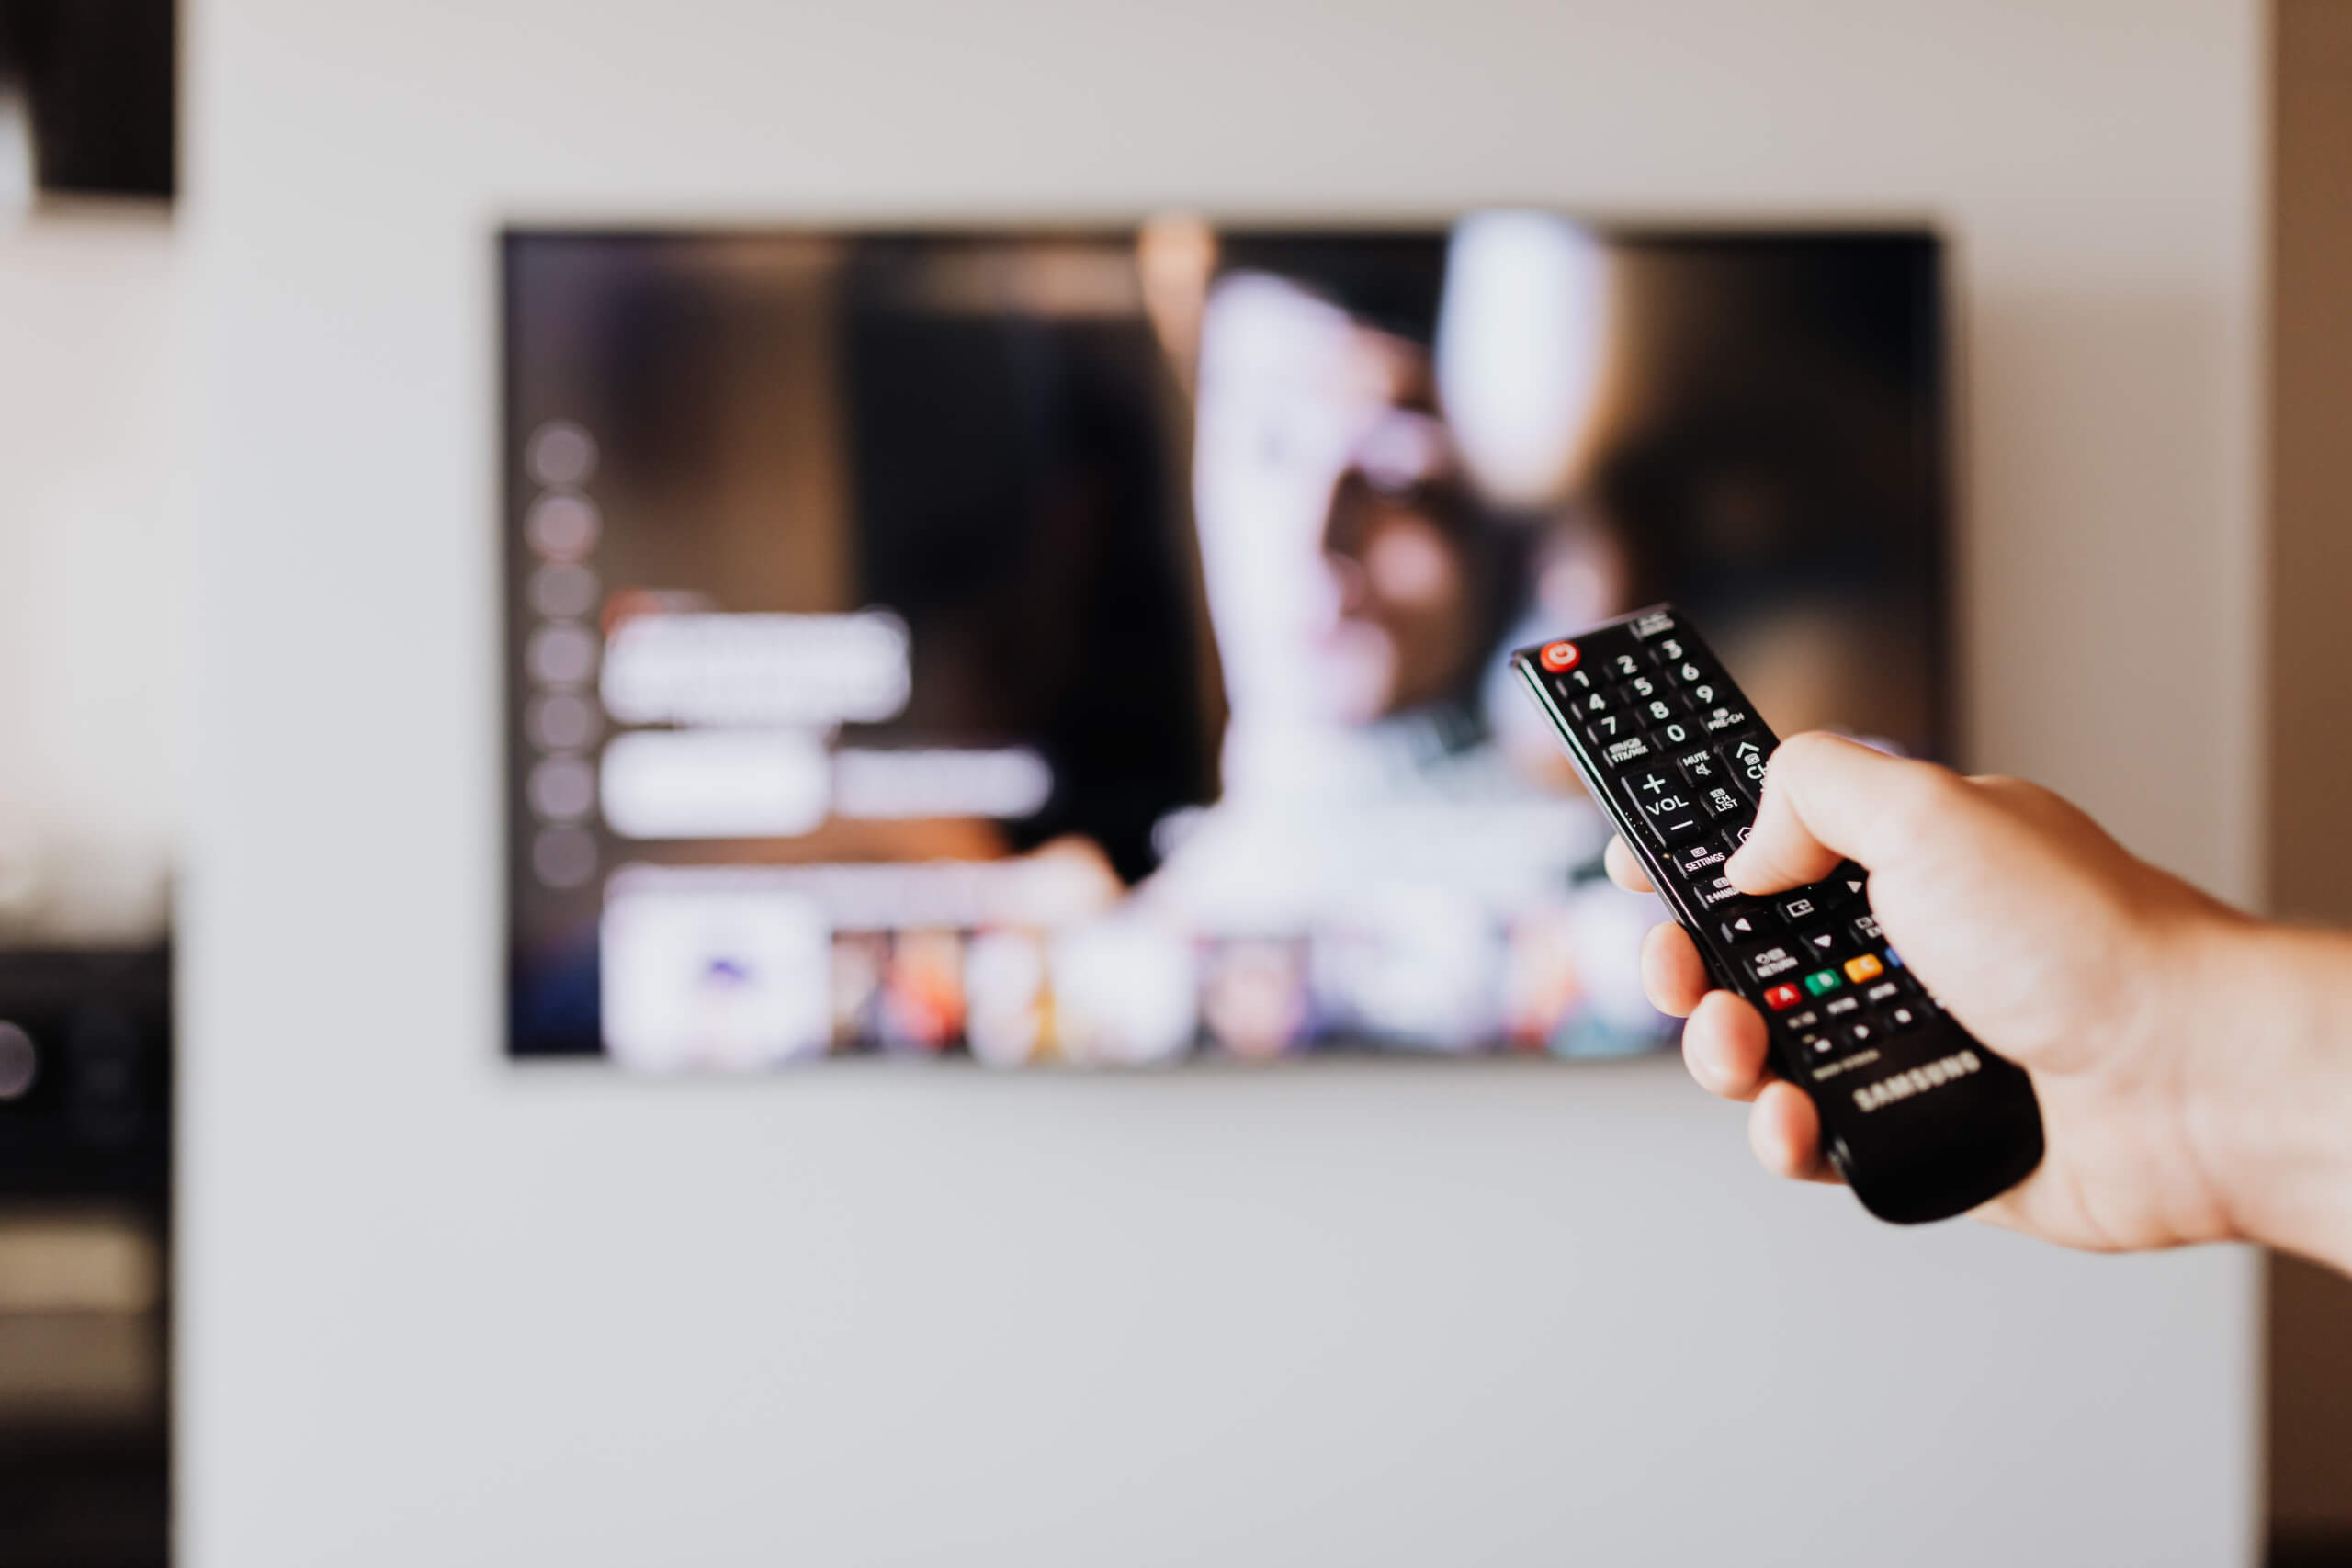 tv dialogue. A person is holding the remote control towards a television that's blurred in the background